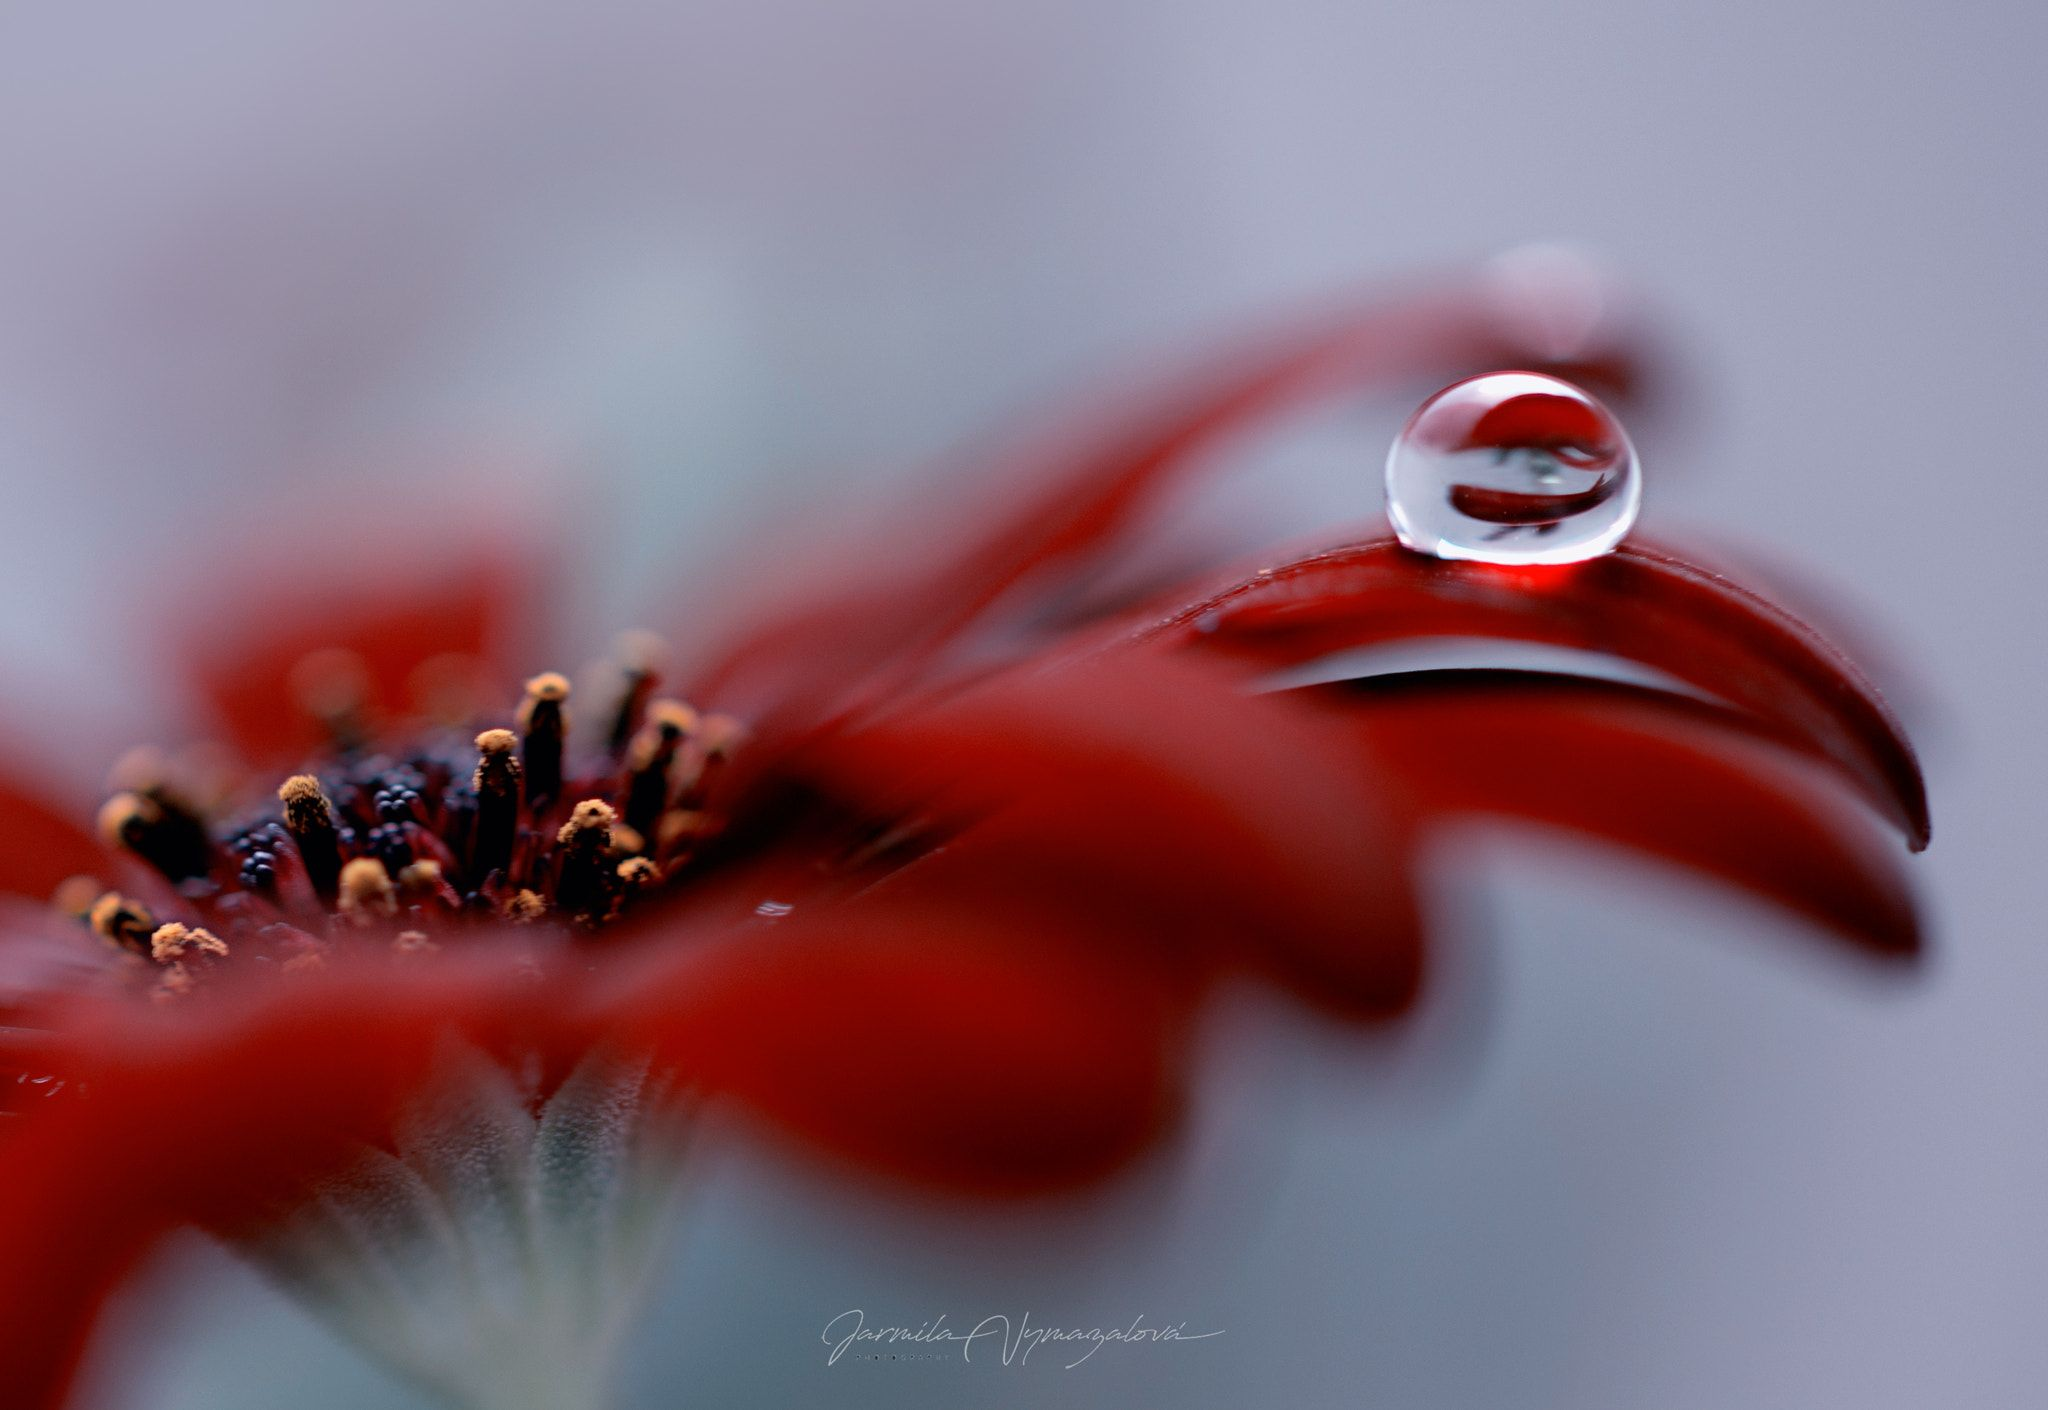 flower drop - flower drop | Water Drop Photography | Pinterest ...